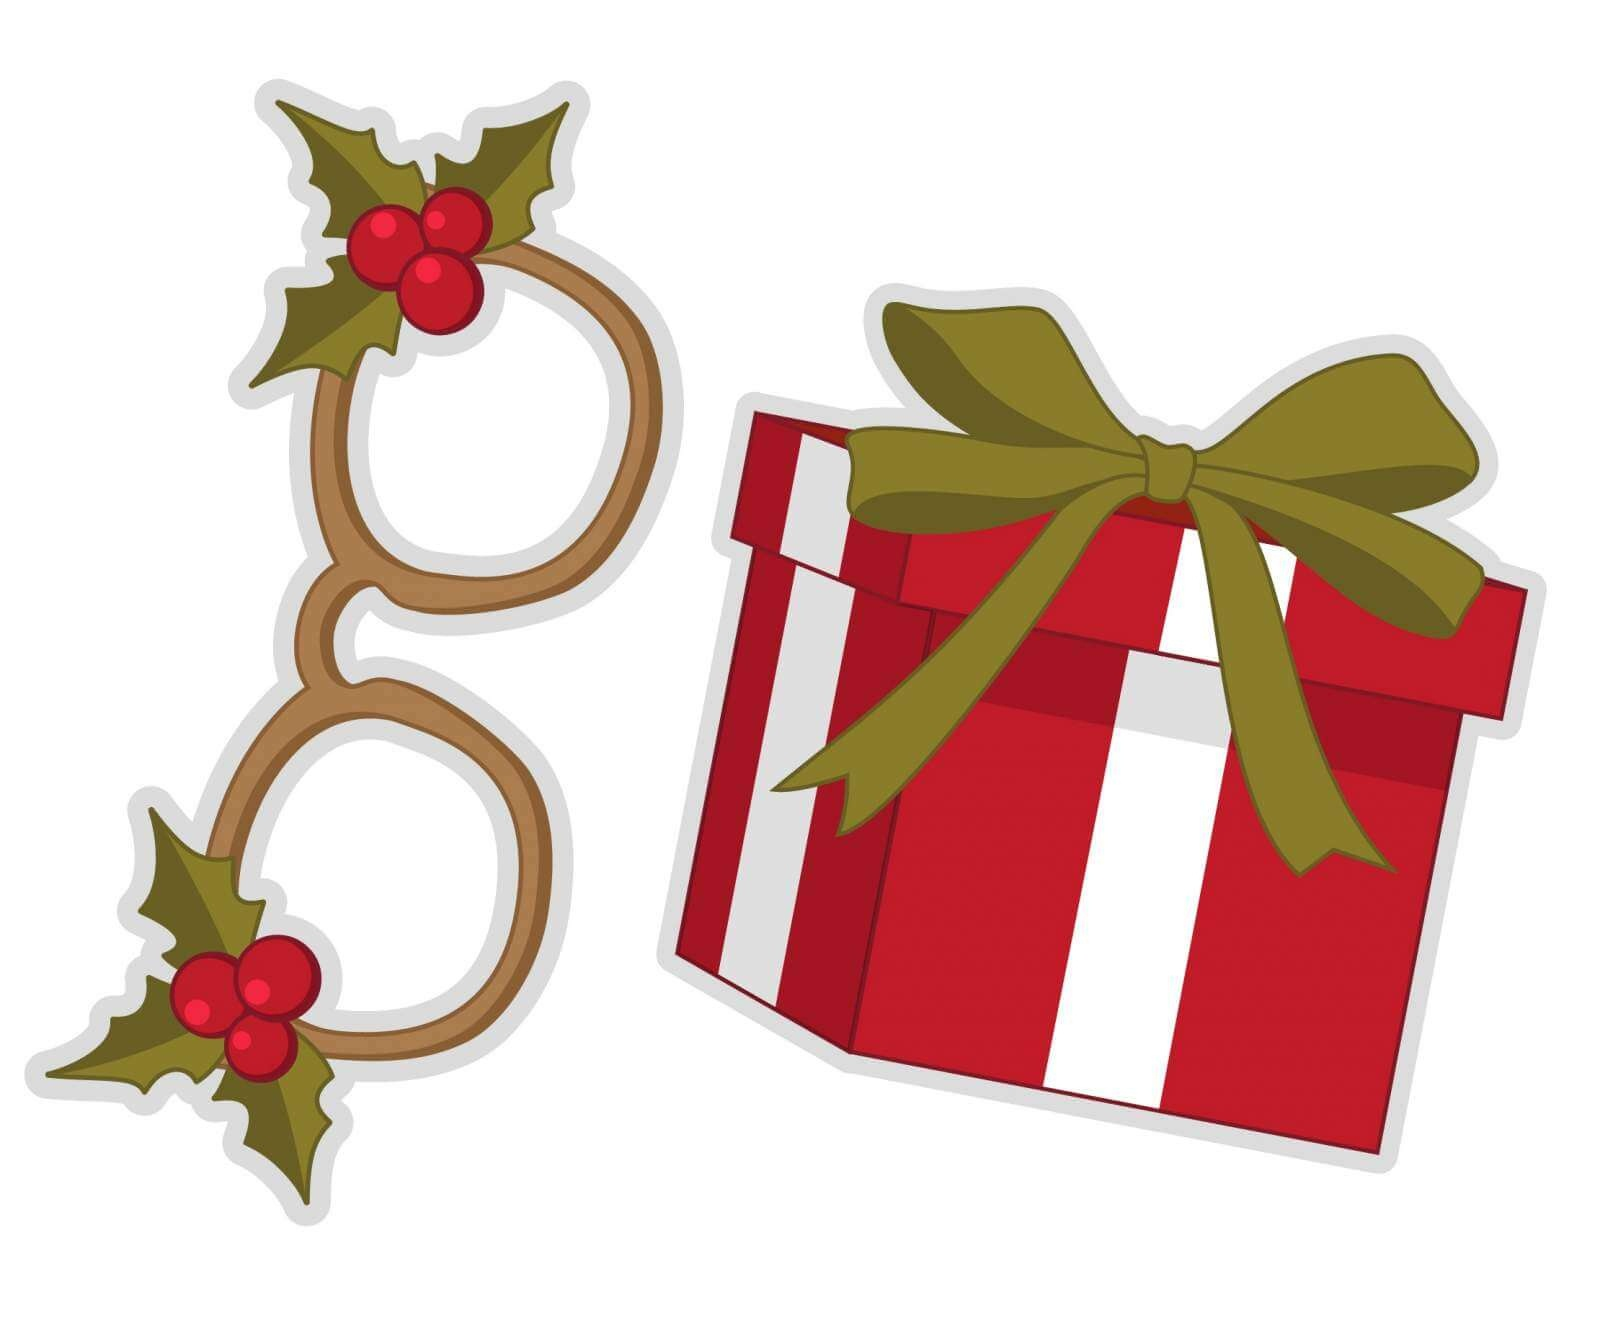 Christmas Photo Booth Props For Every Theme | Shutterfly - Free Printable Christmas Photo Booth Props